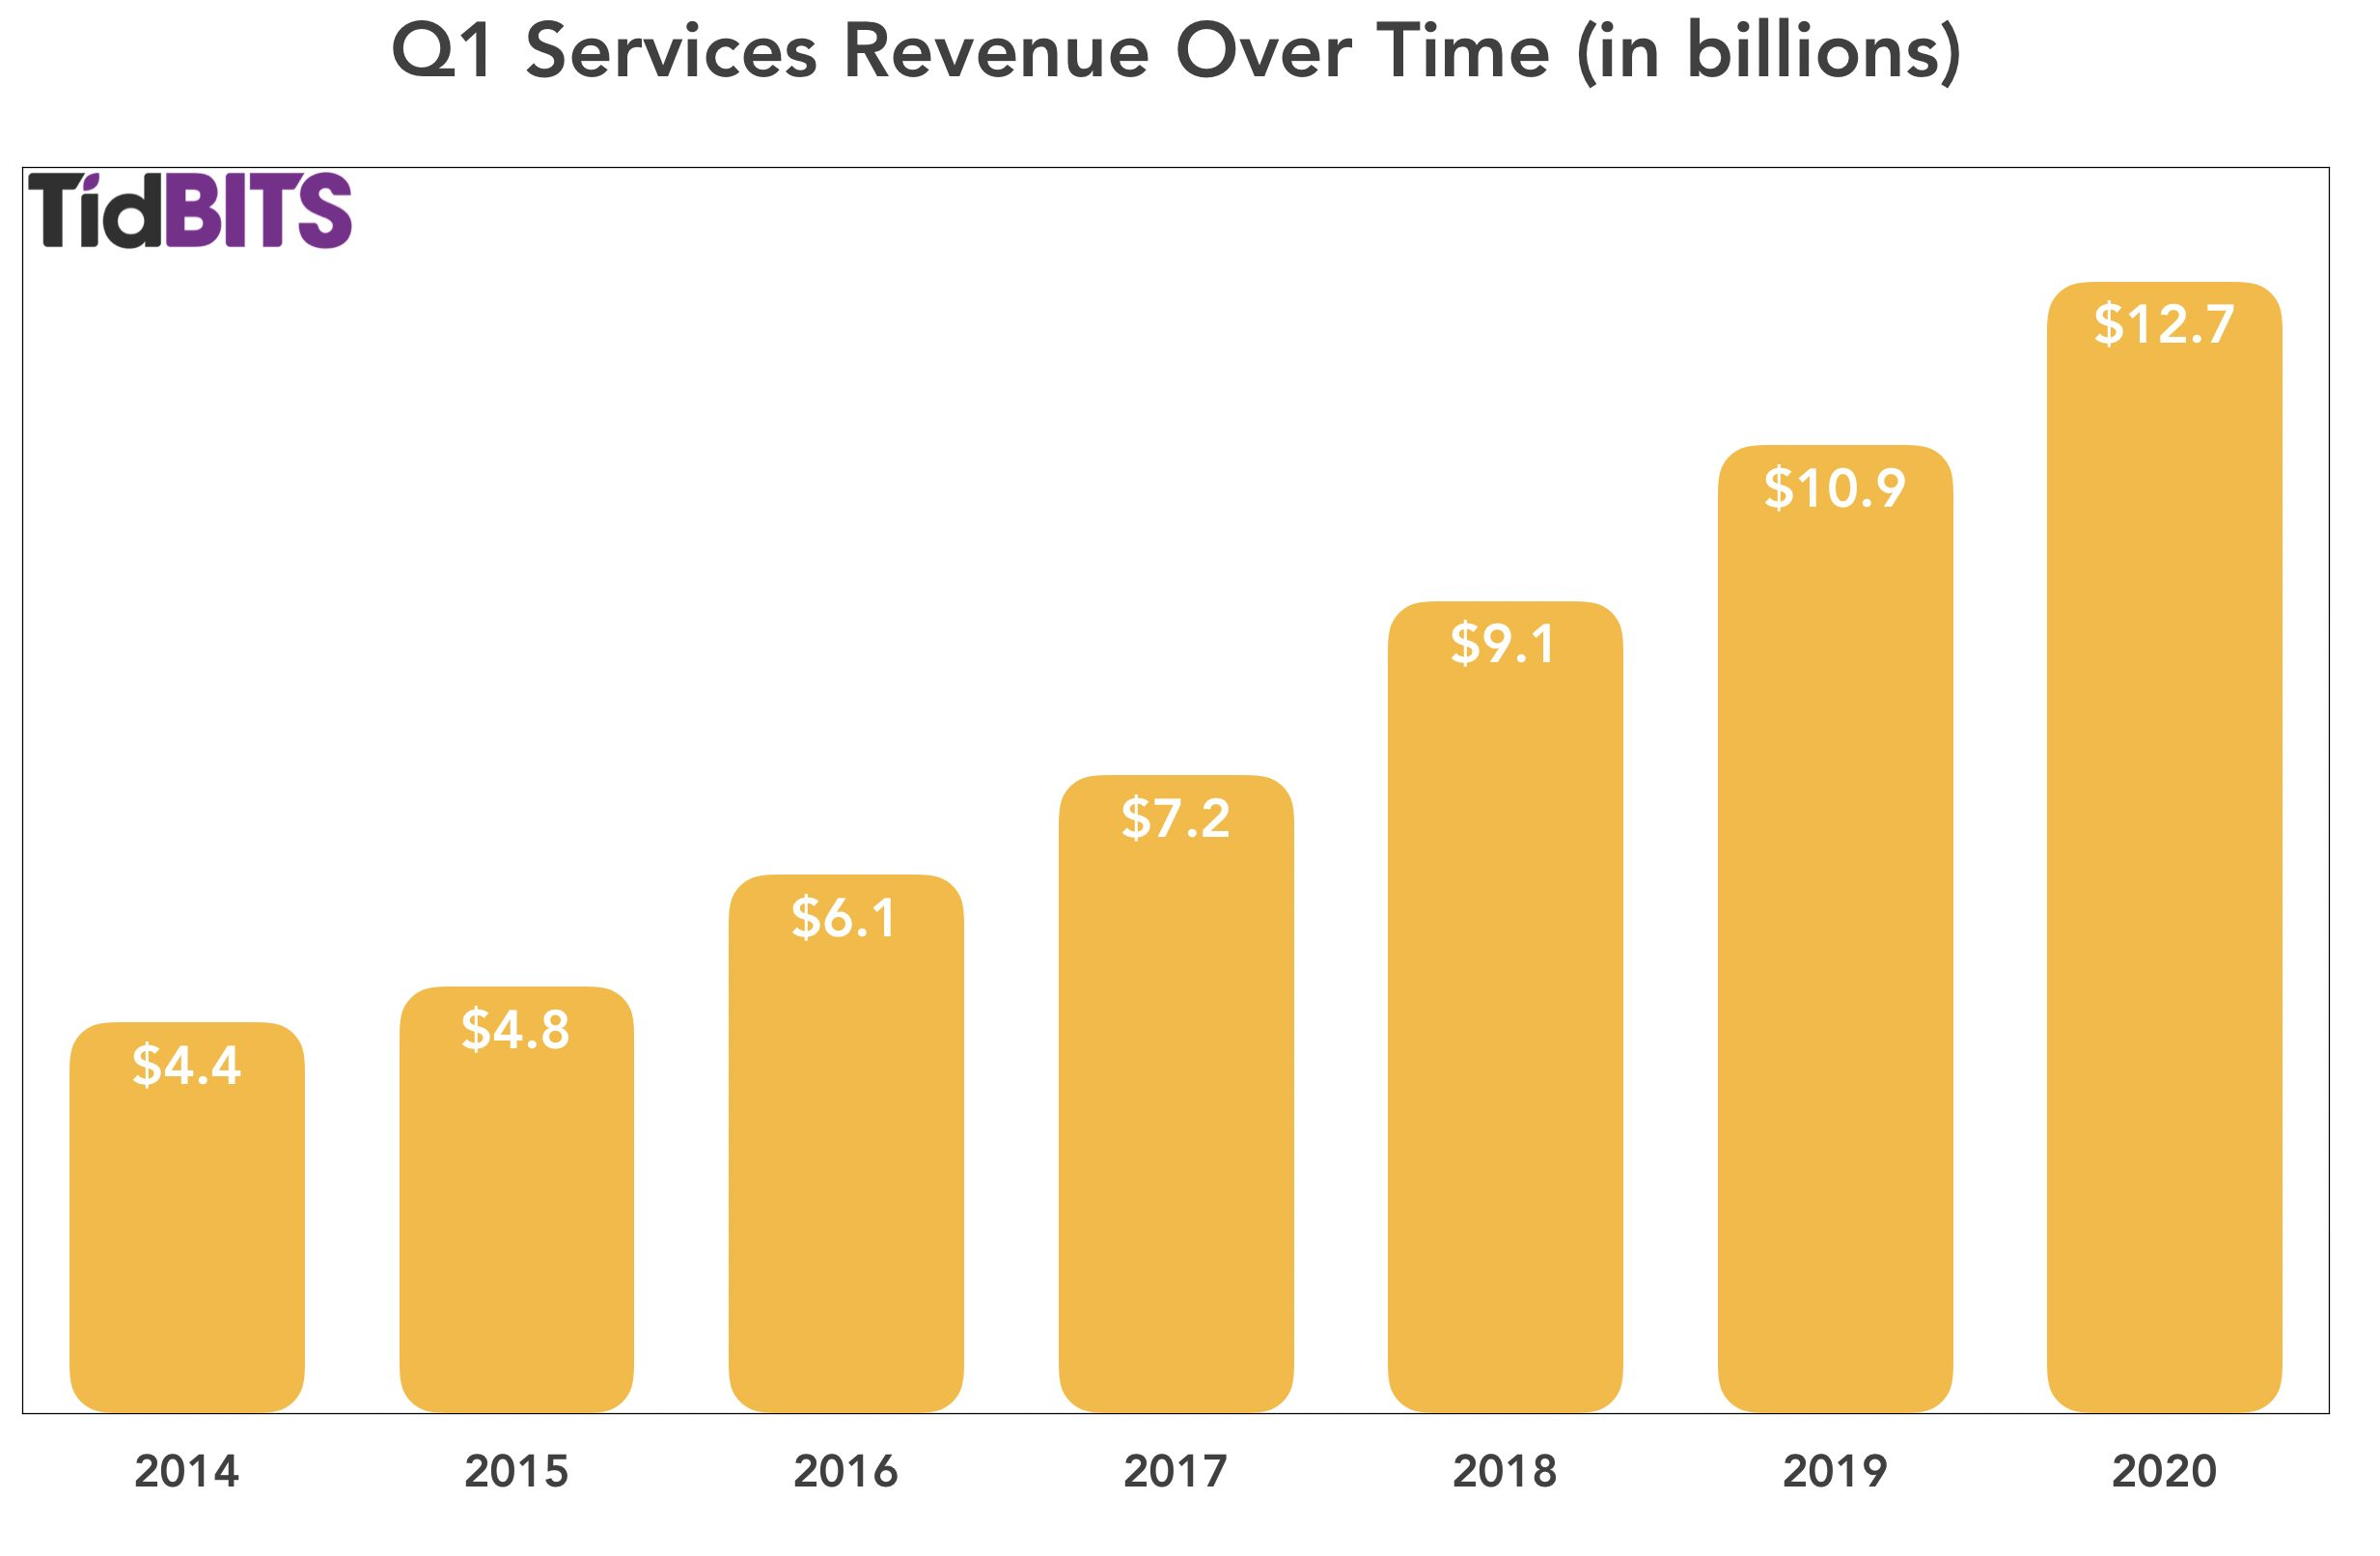 Q1 Services revenue over time